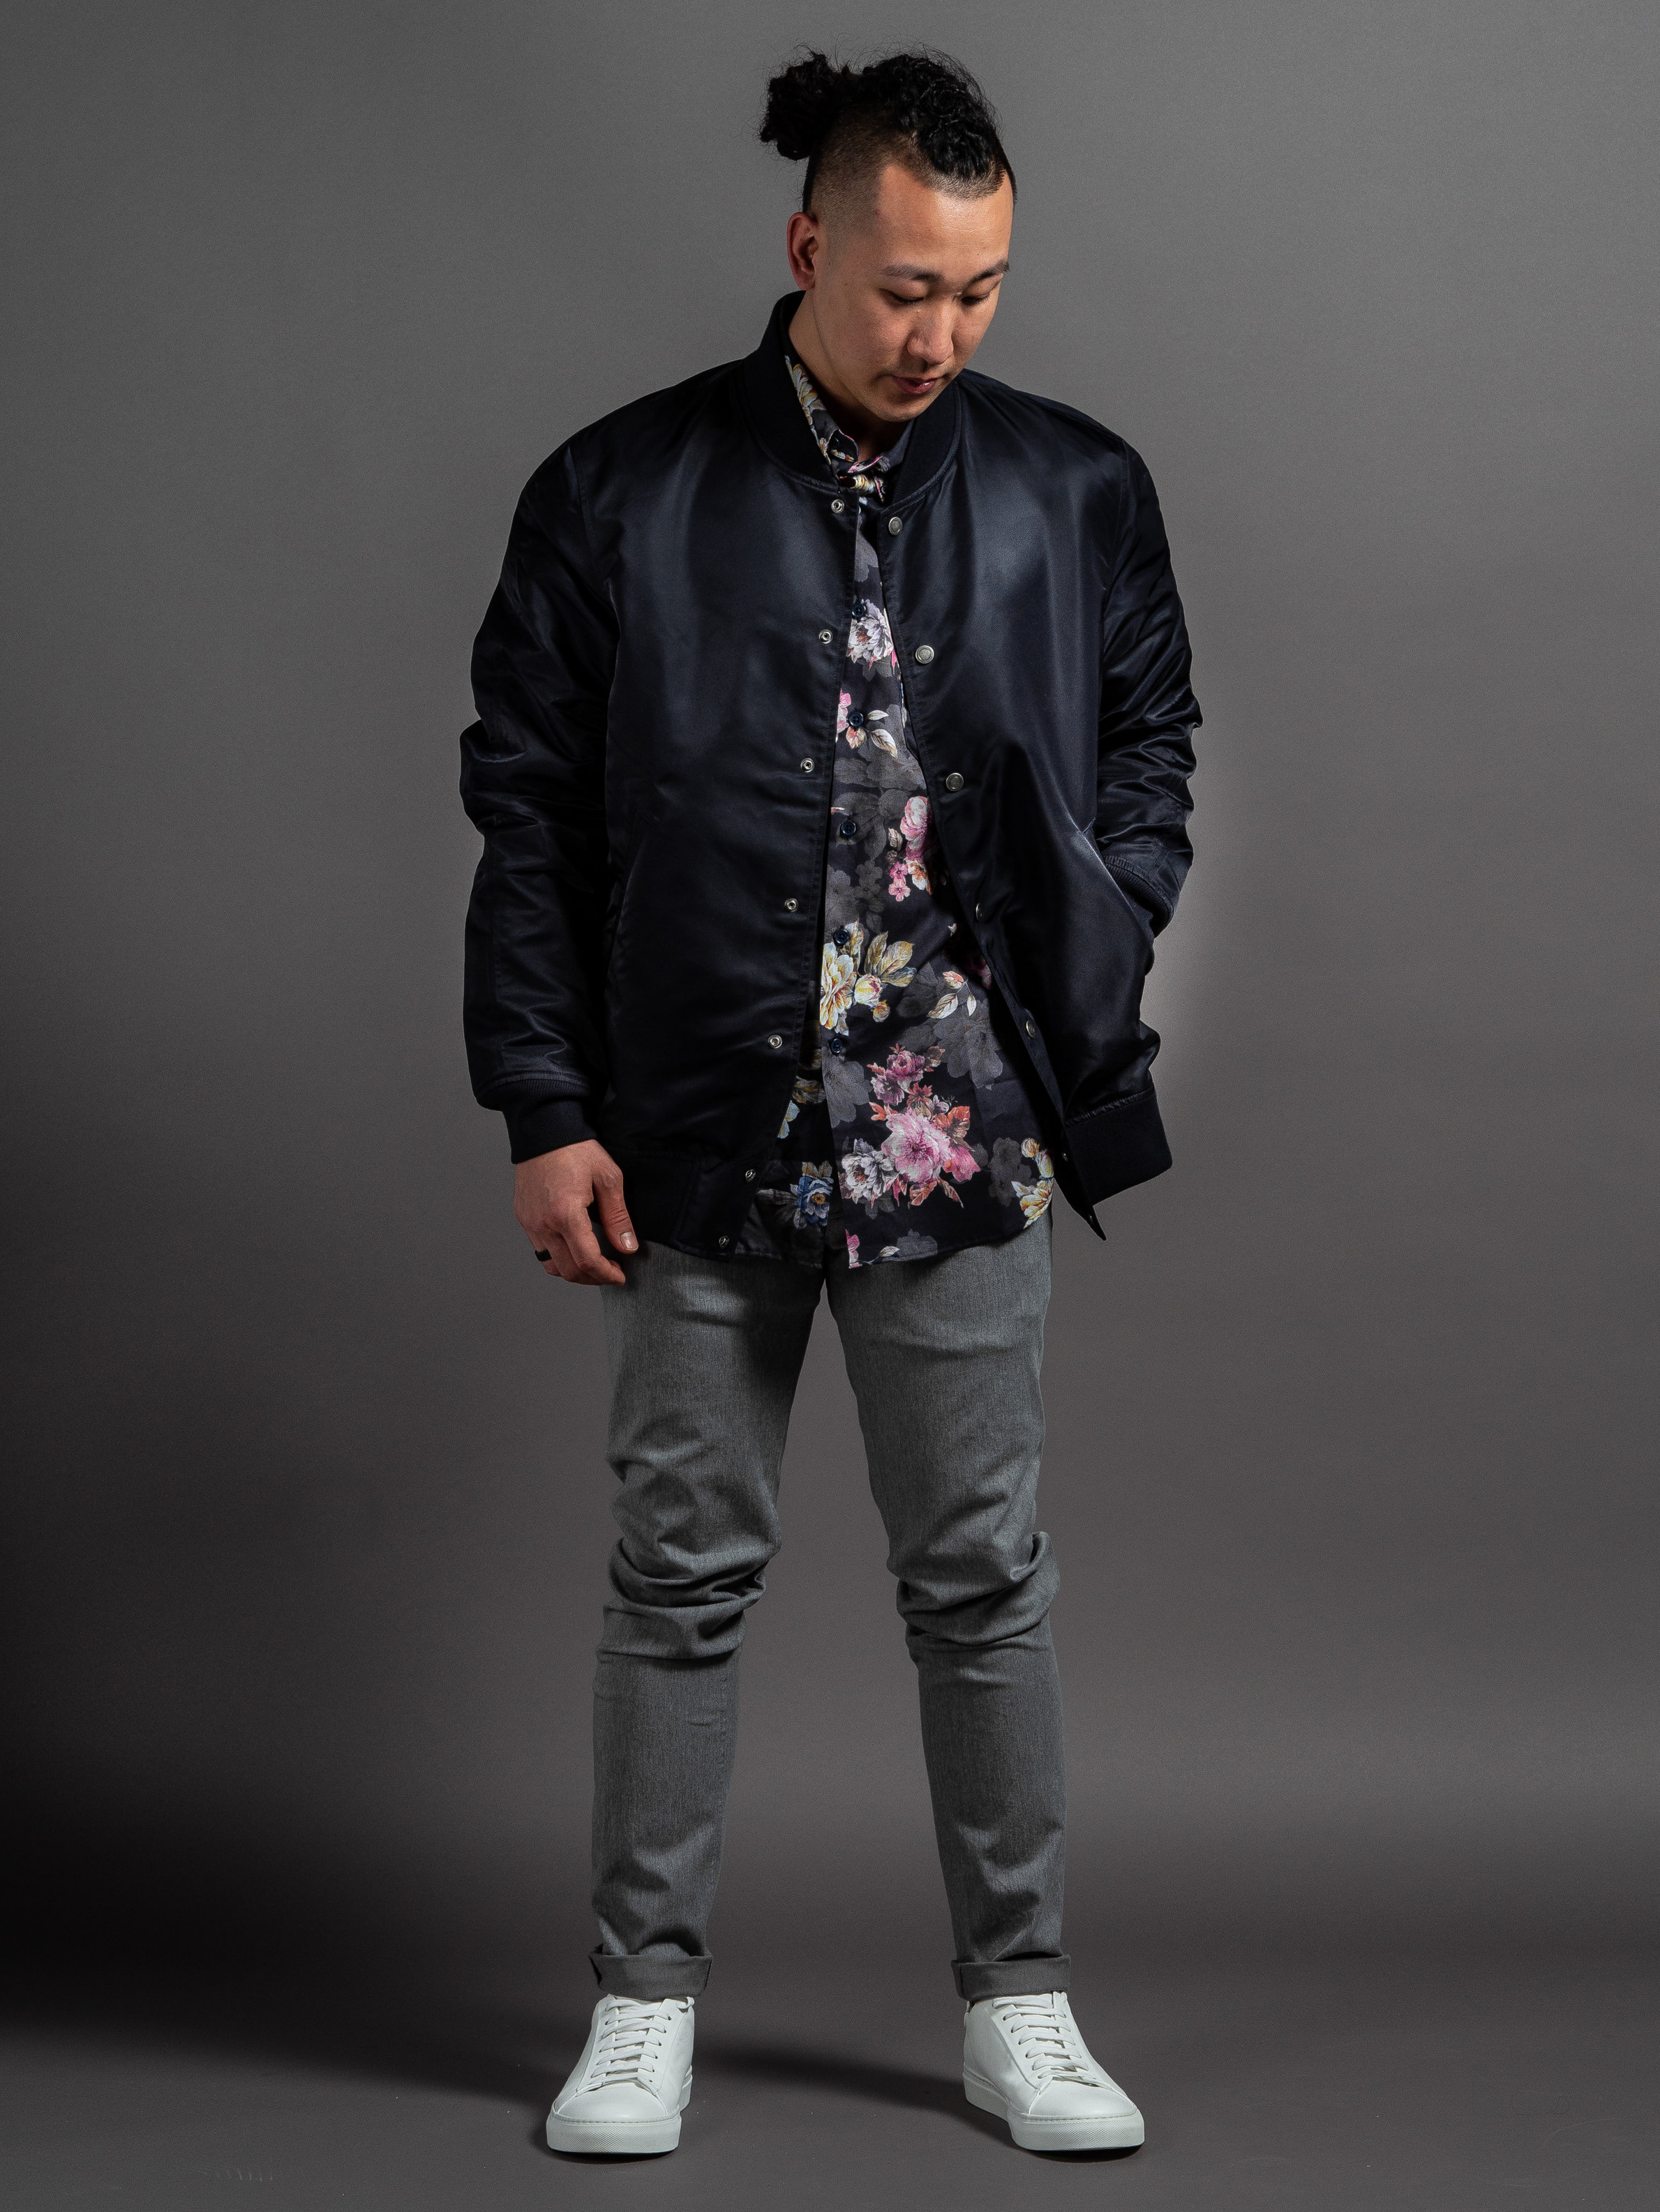 Reigning Champ Satin Stadium Jacket  Naked & Famous Flower Painting Shirt  Outclass Stretch Chinos  Wings + Horns White Court Sneakers    SHOP THIS LOOK